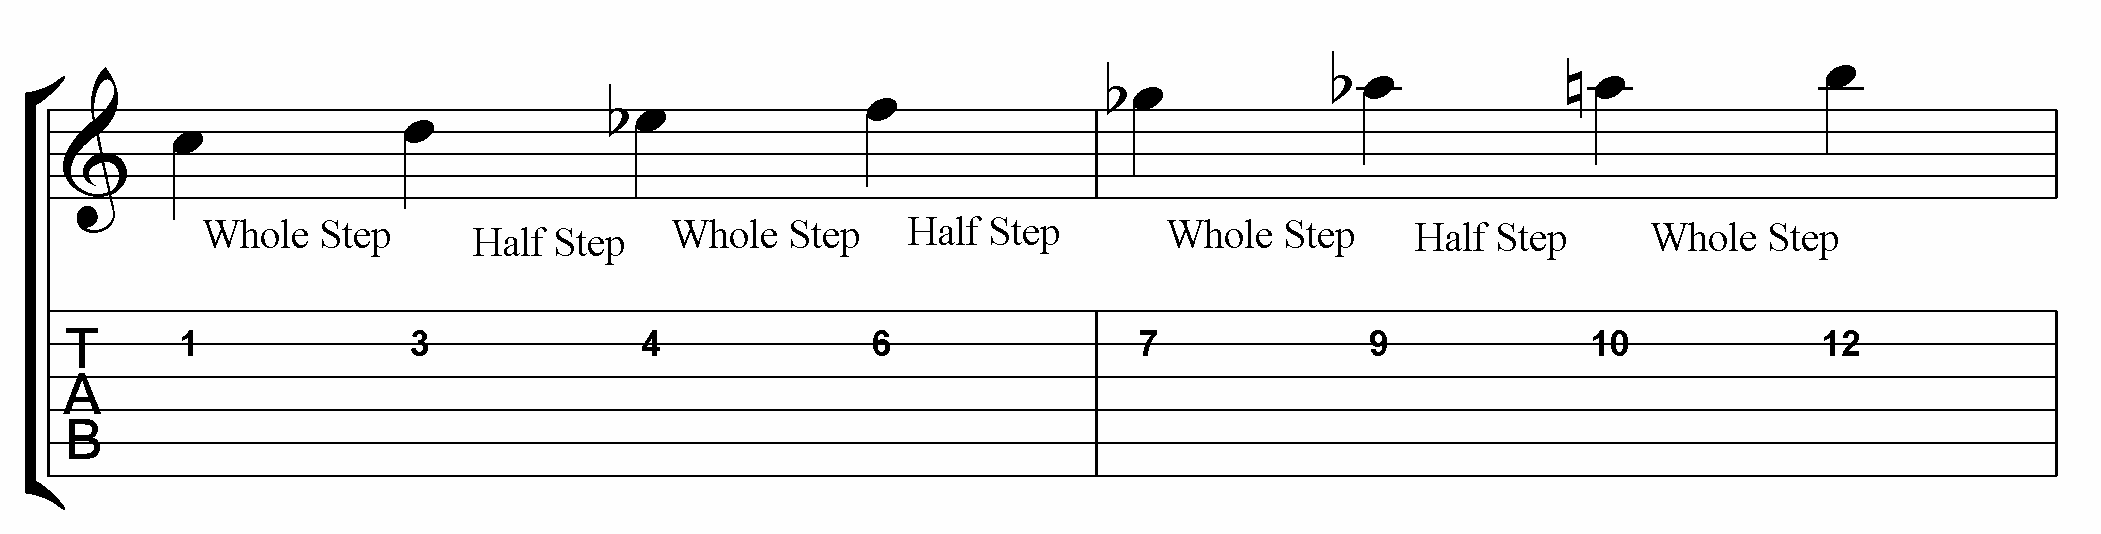 How To Play Diminished Scales On Guitar Jamie Holroyd Guitar